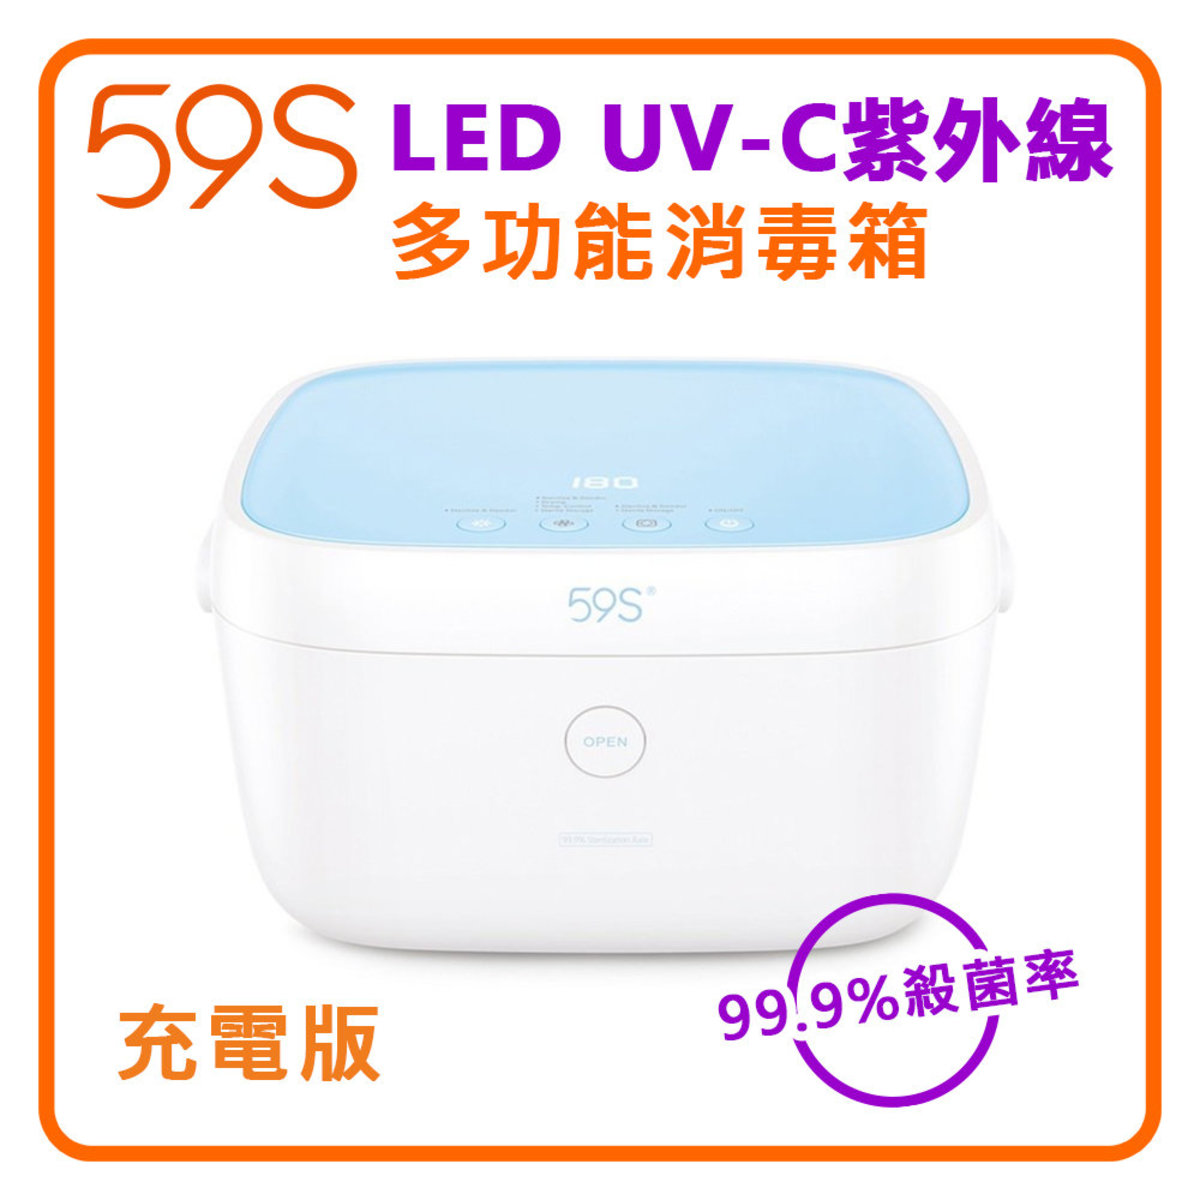 LED-UVC Multi-functional Sterilizer Box T5 (粉藍)(FDA、SGS認證)